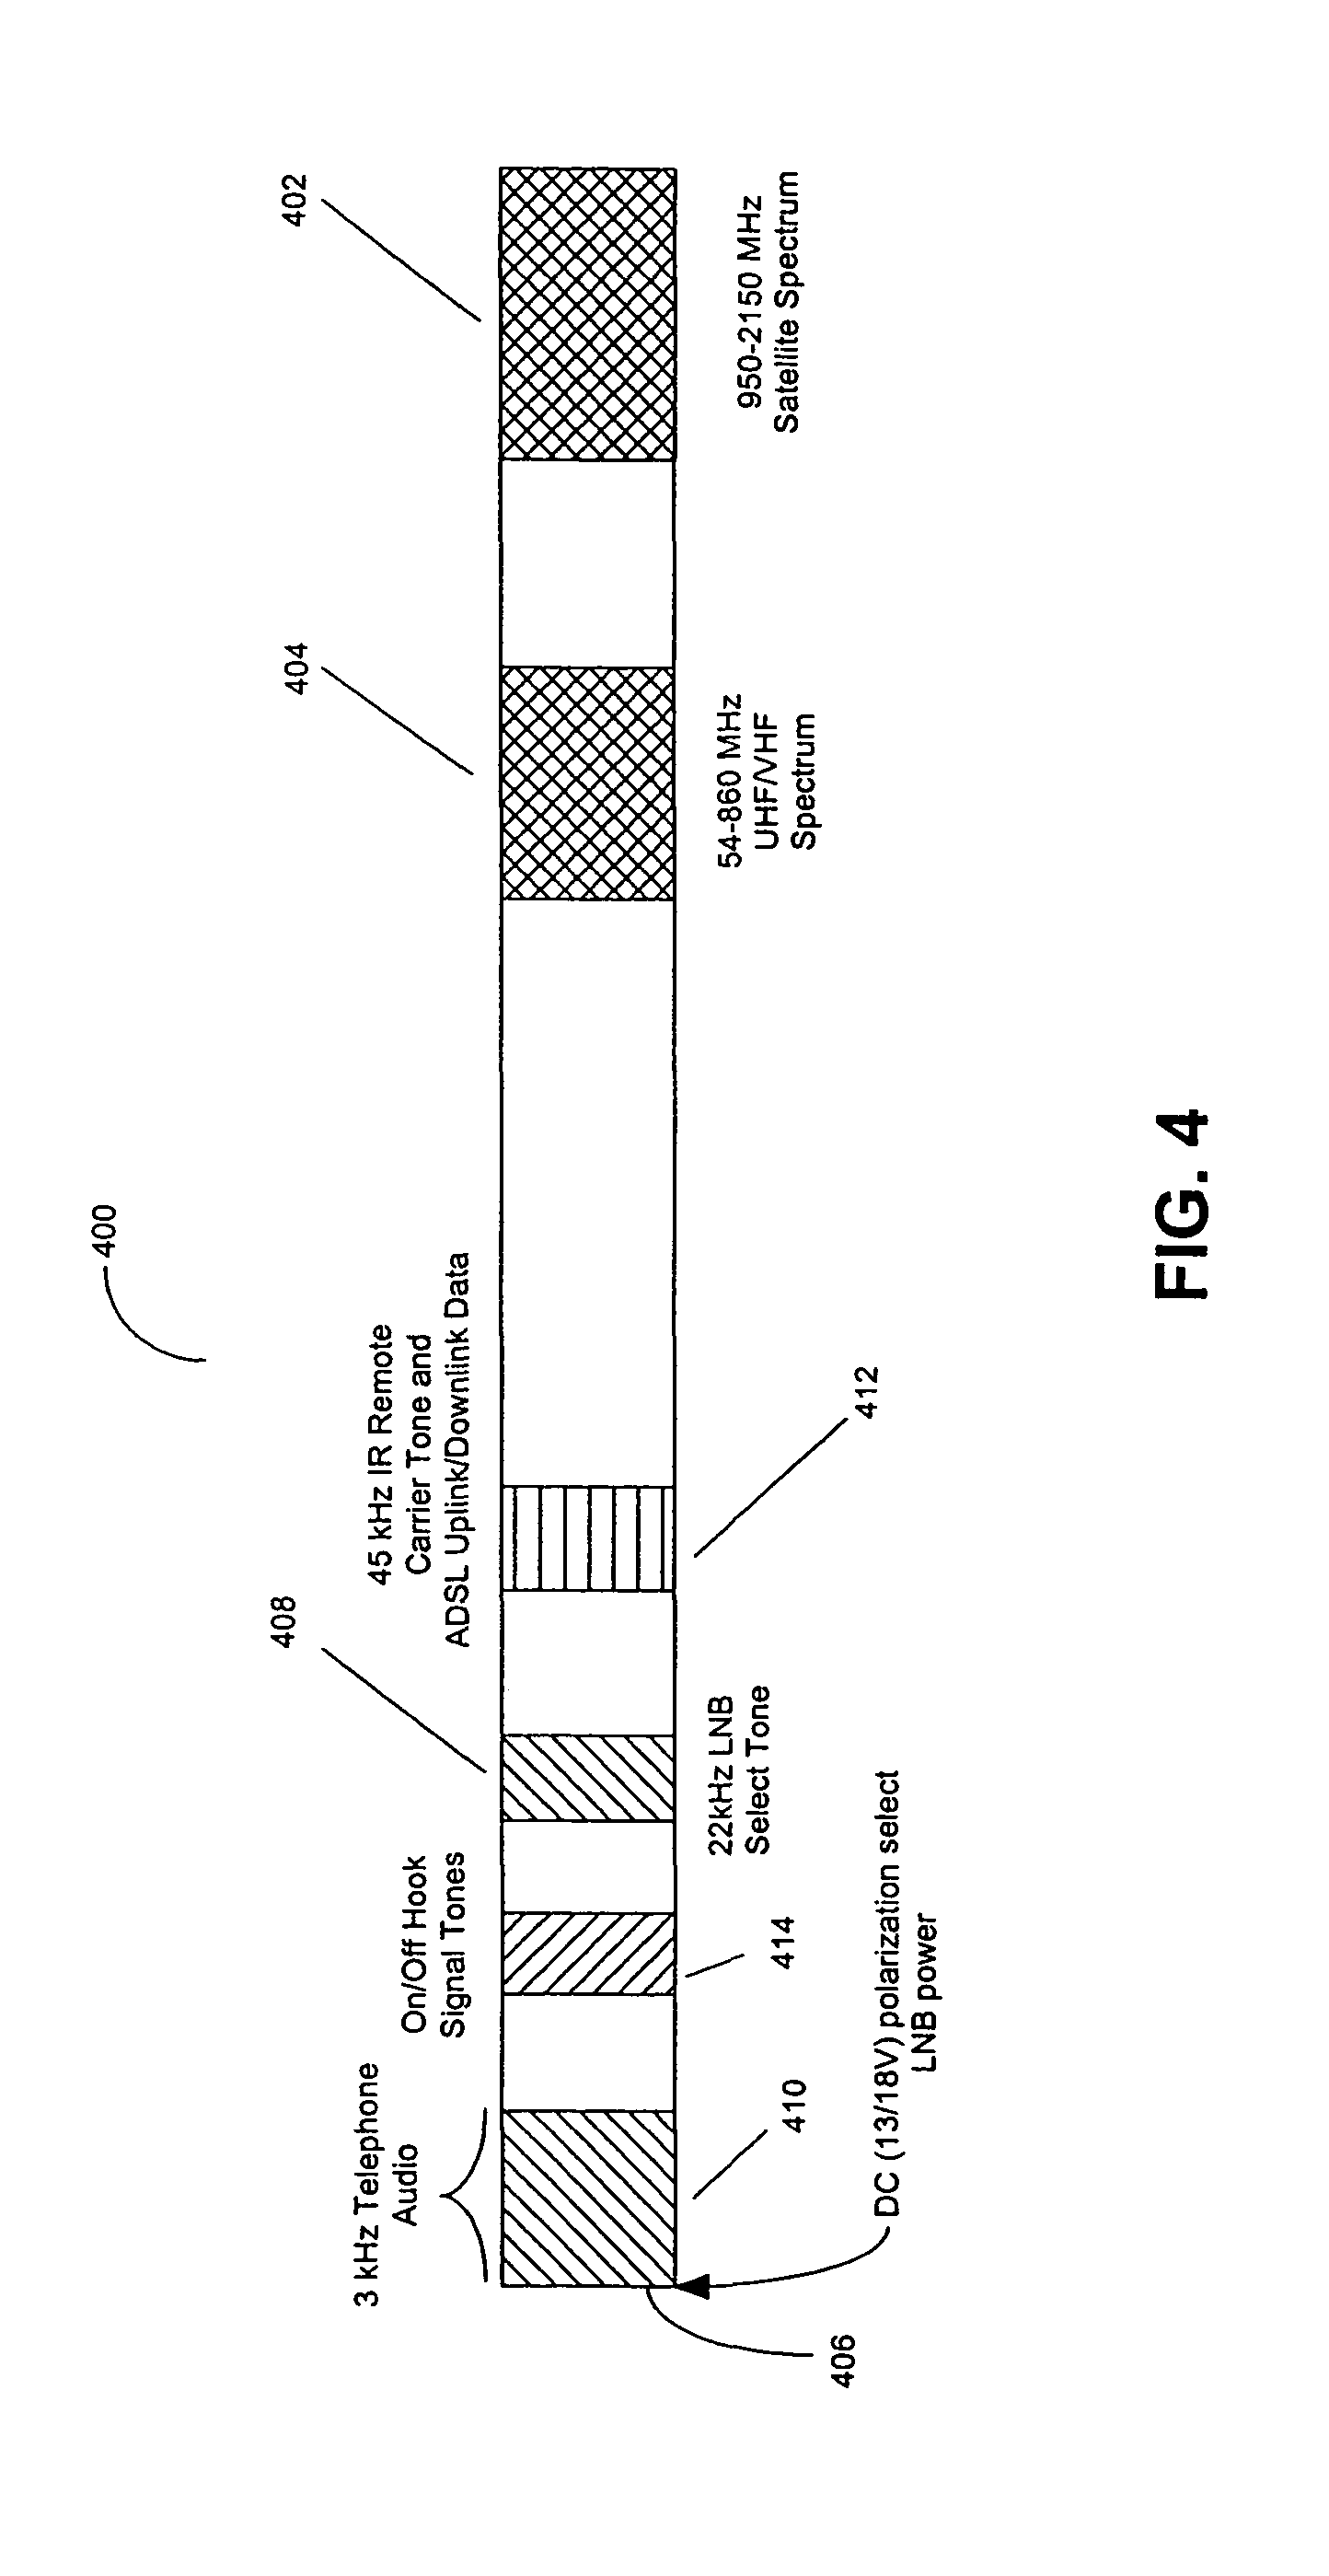 Patent US8763059 - Method and apparatus for connecting satellite